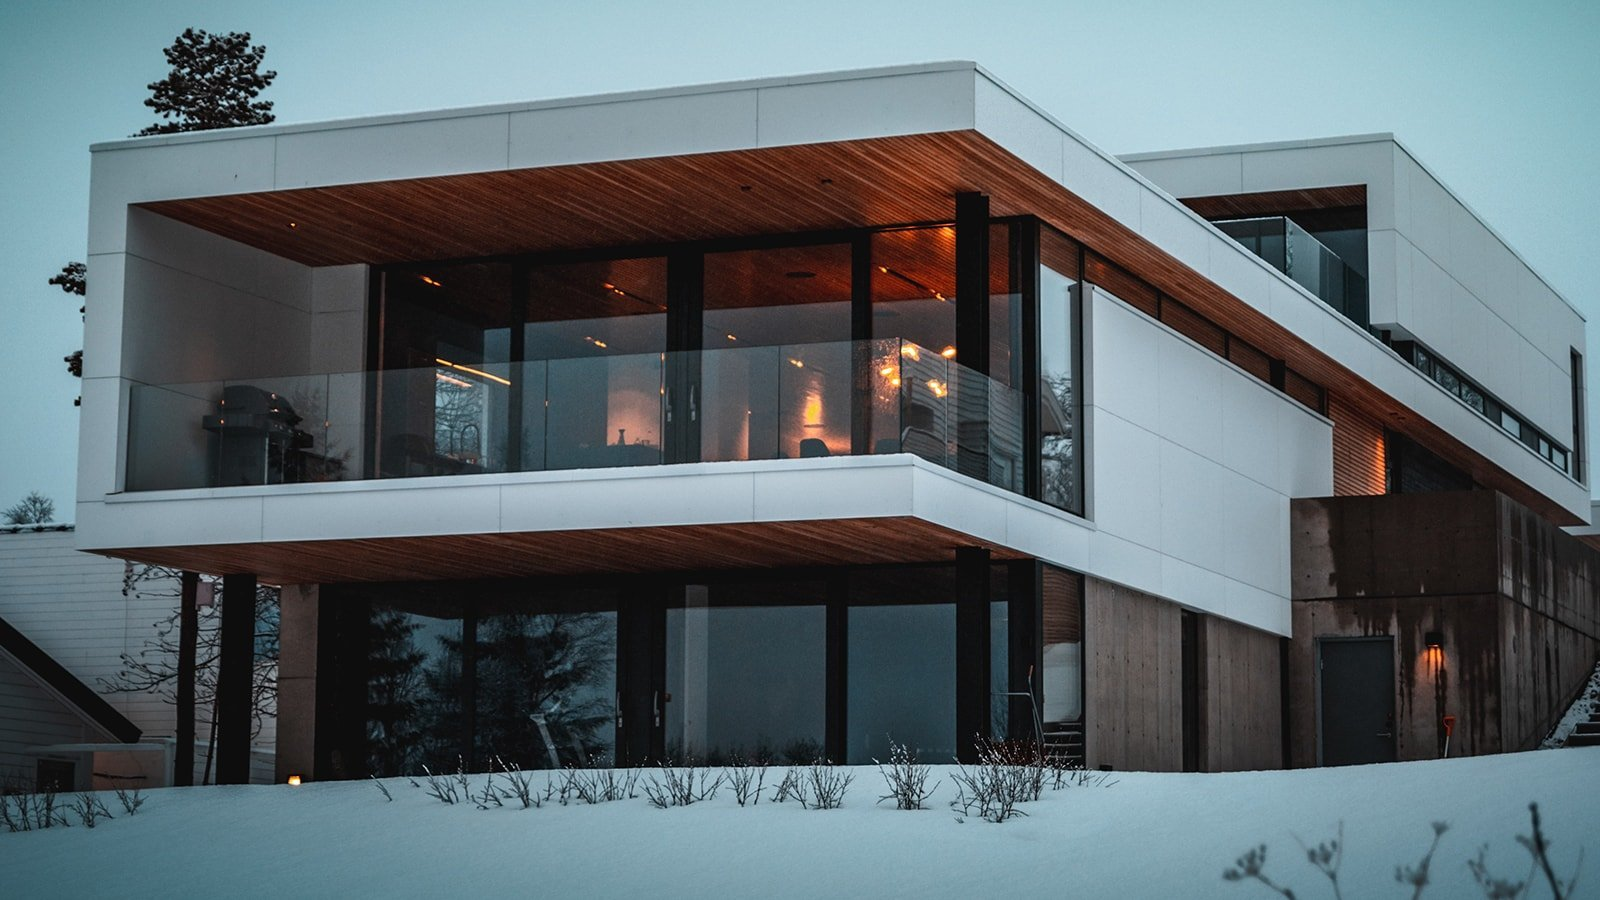 Modern house in the winter